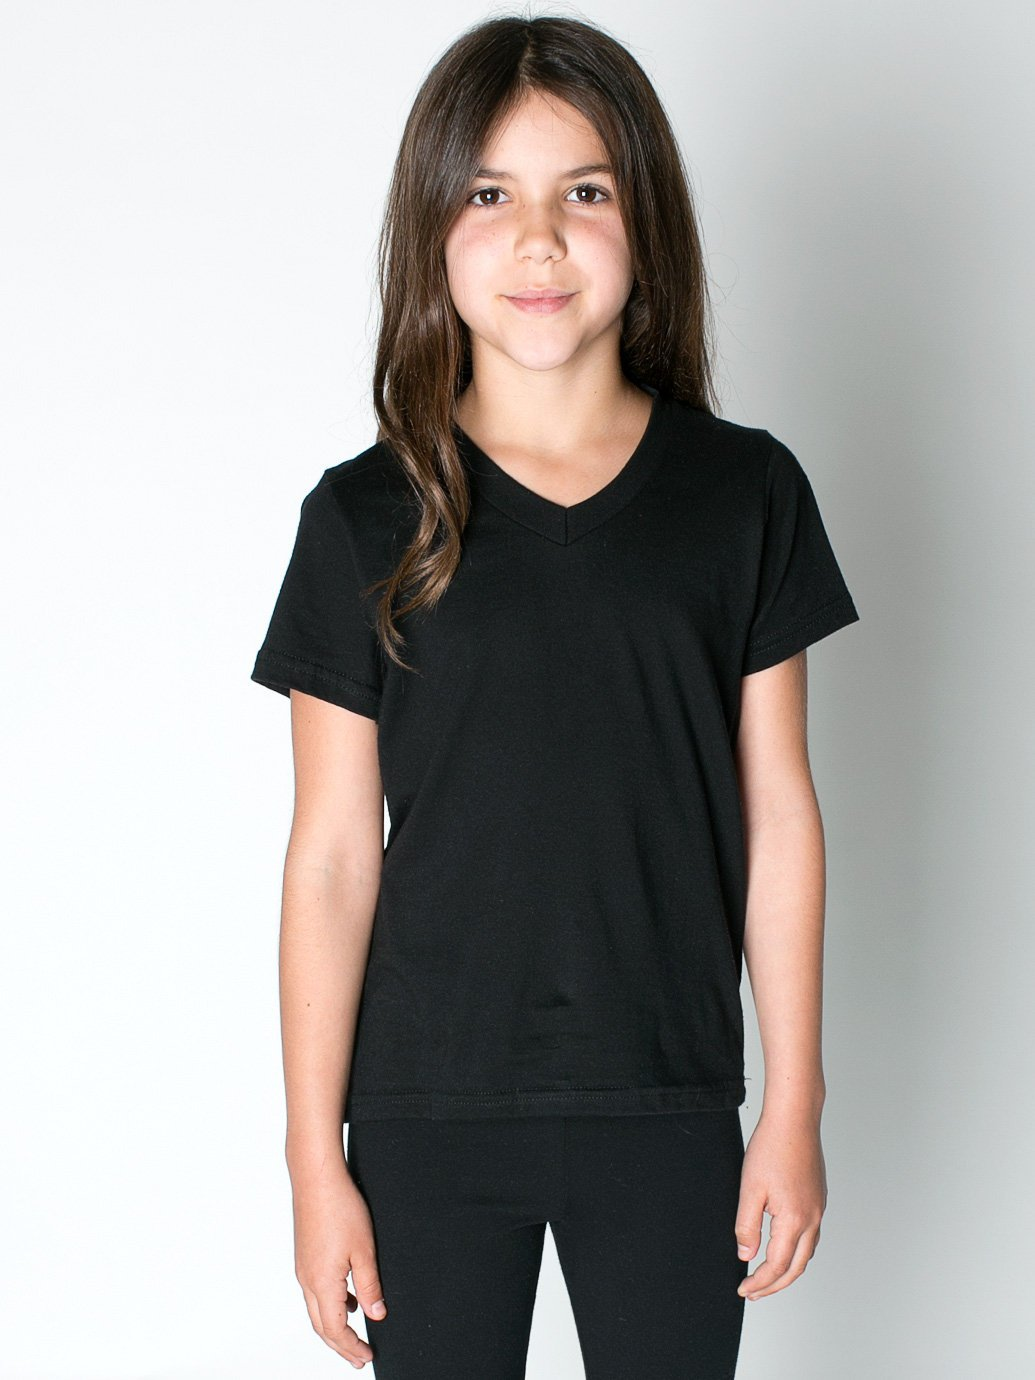 Black t shirt for toddler - Childrens Black T Shirt Is Shirt